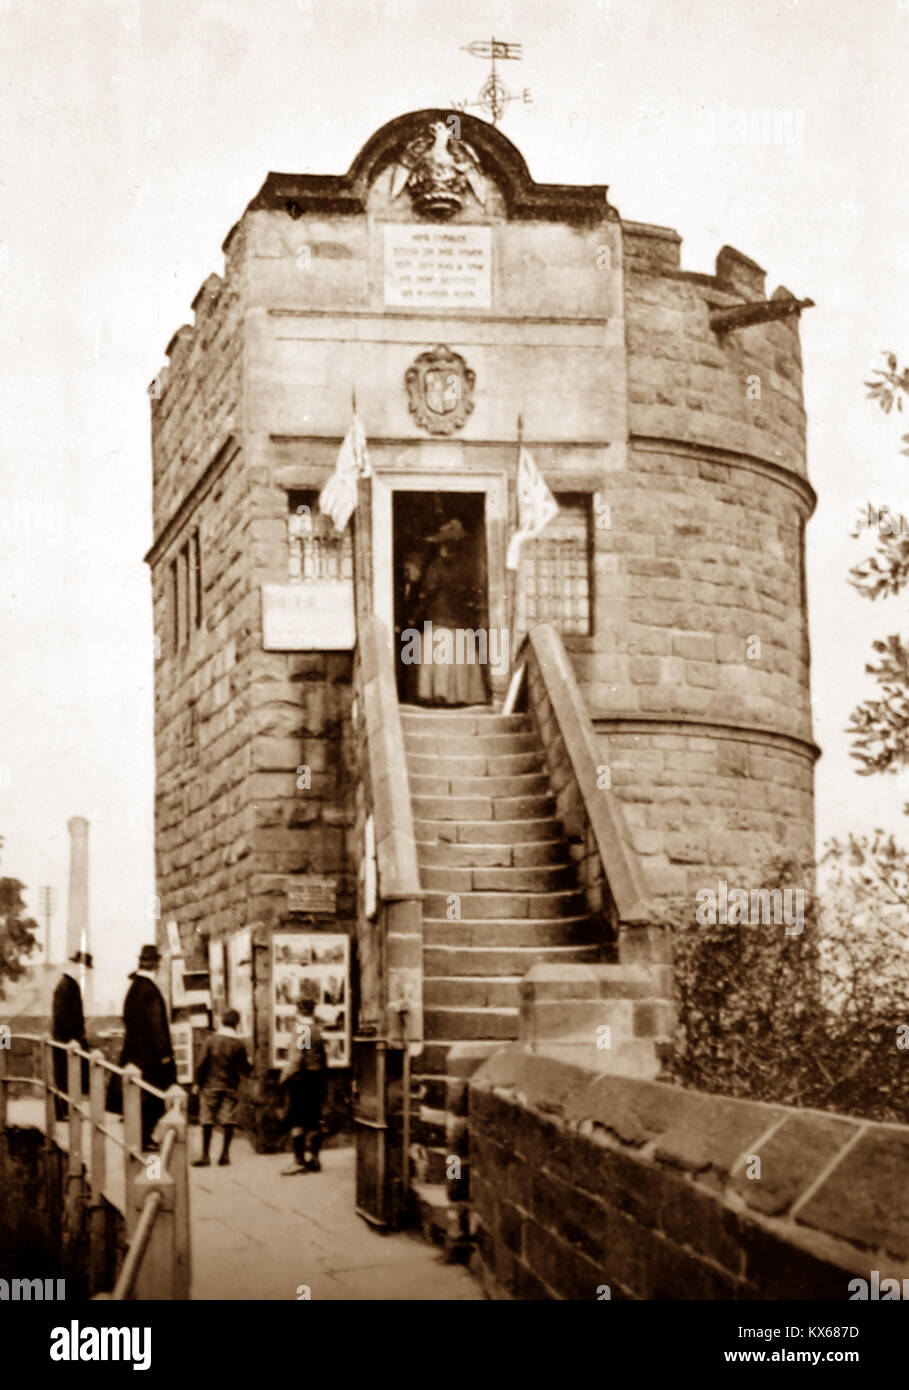 King Charles' Watch Tower, City Walls, Chester, early 1900s - Stock Image